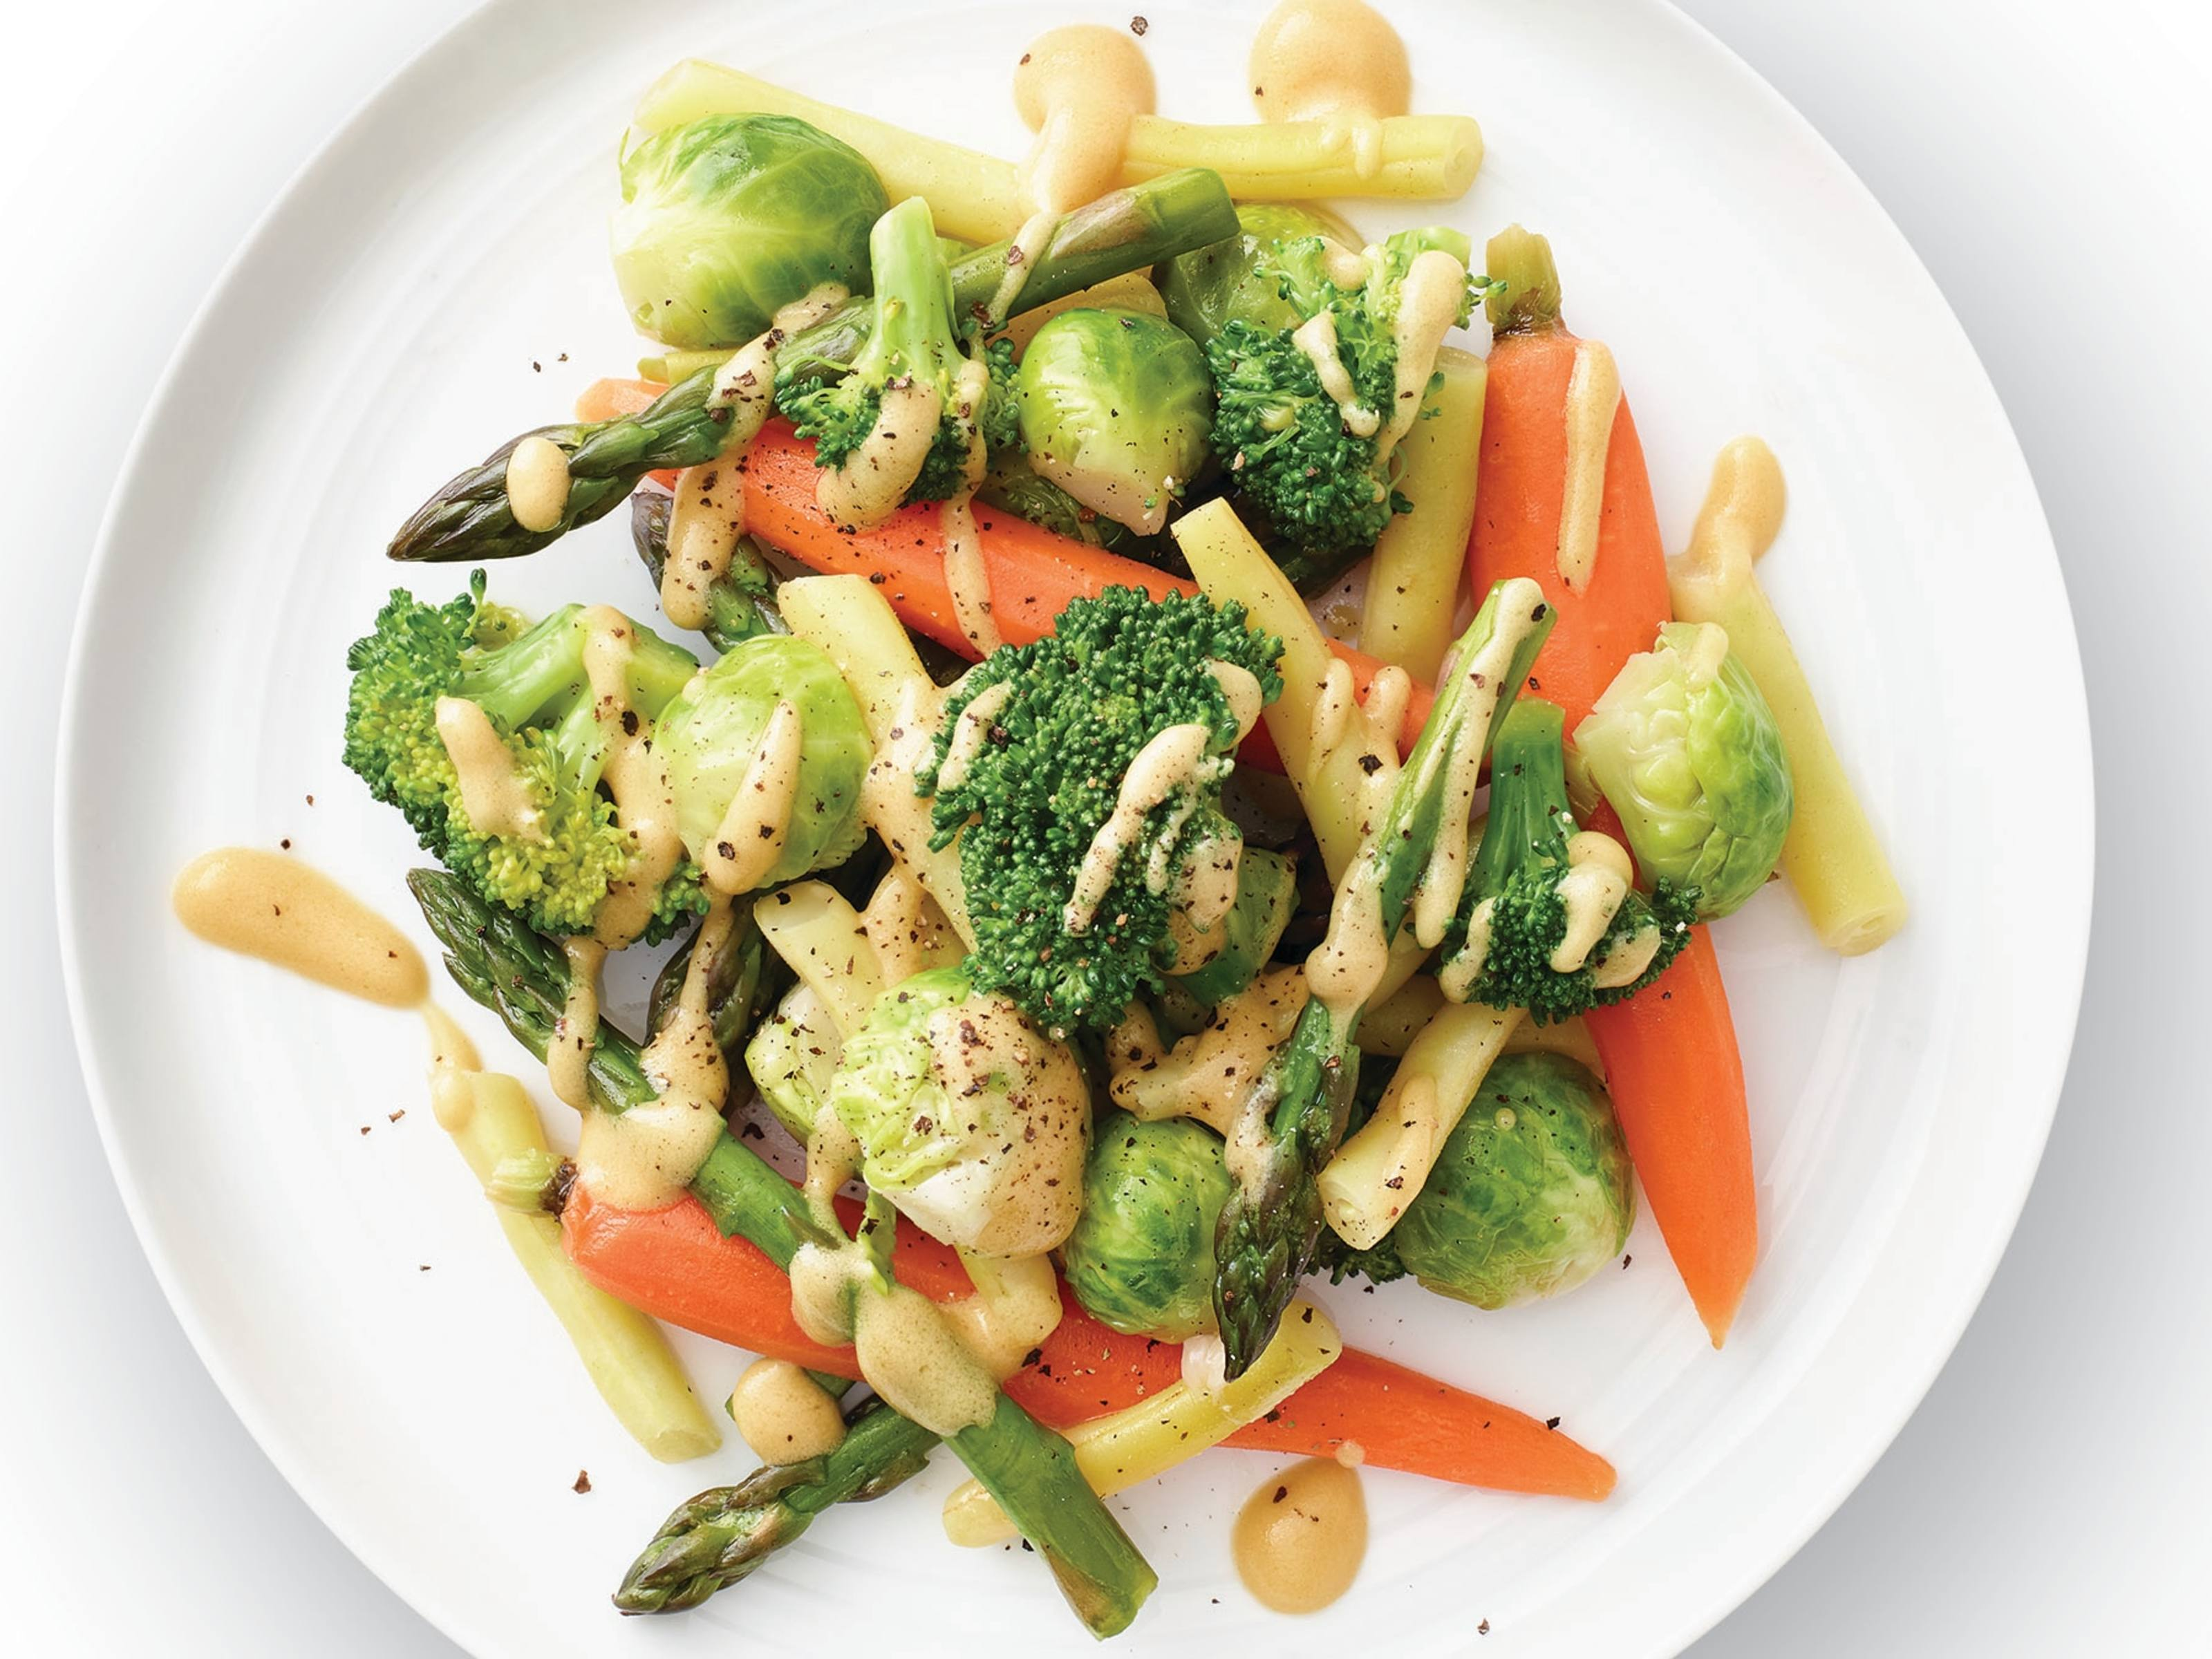 Steamed Vegetables with Dijon Dressing